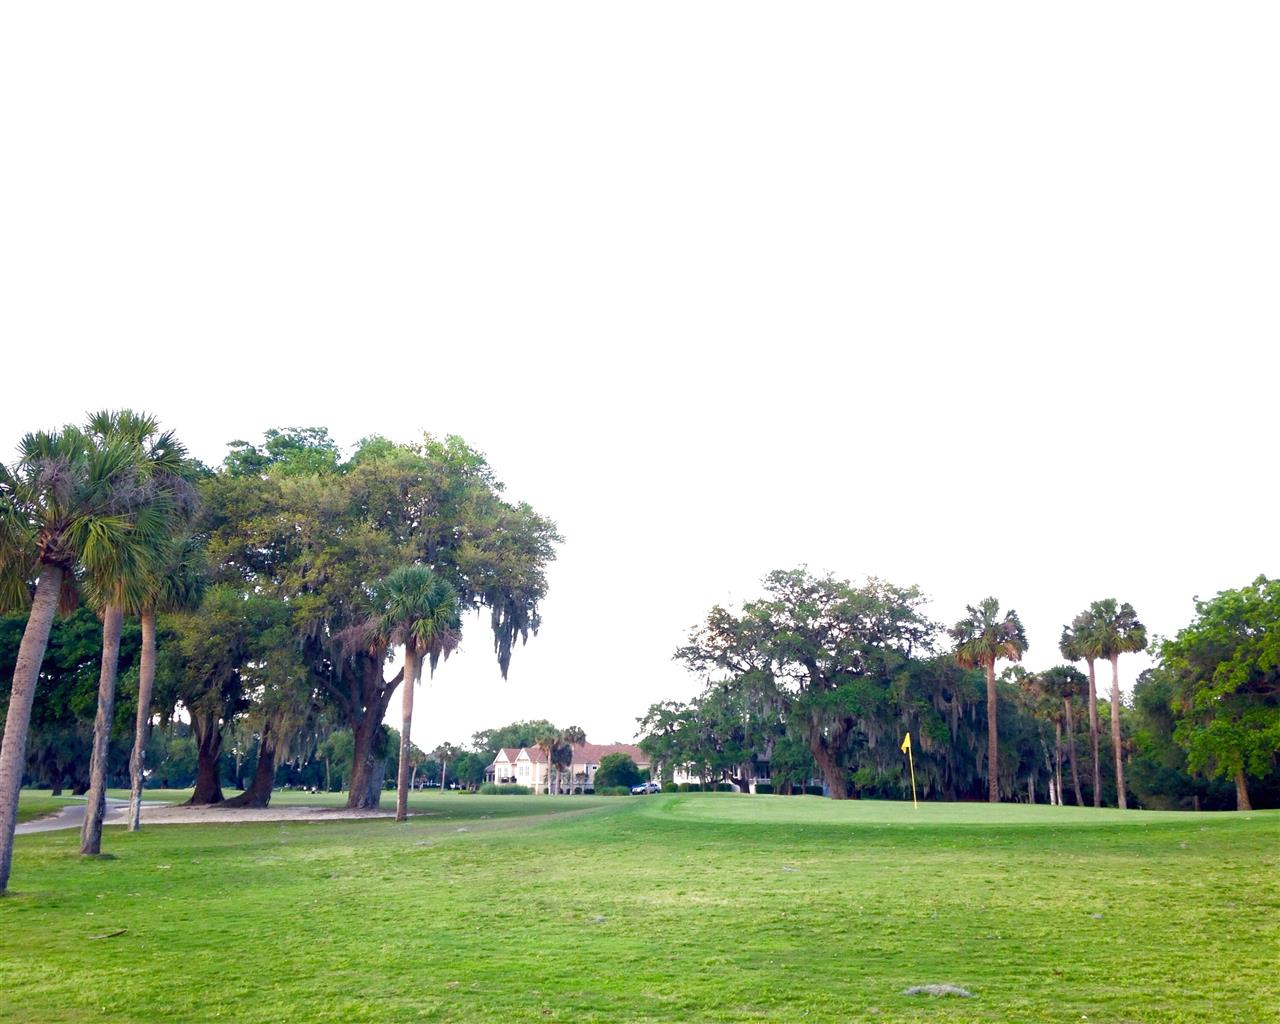 Moss Creek Hilton Head Island SC, looking back across one of the two Fazio private golf courses